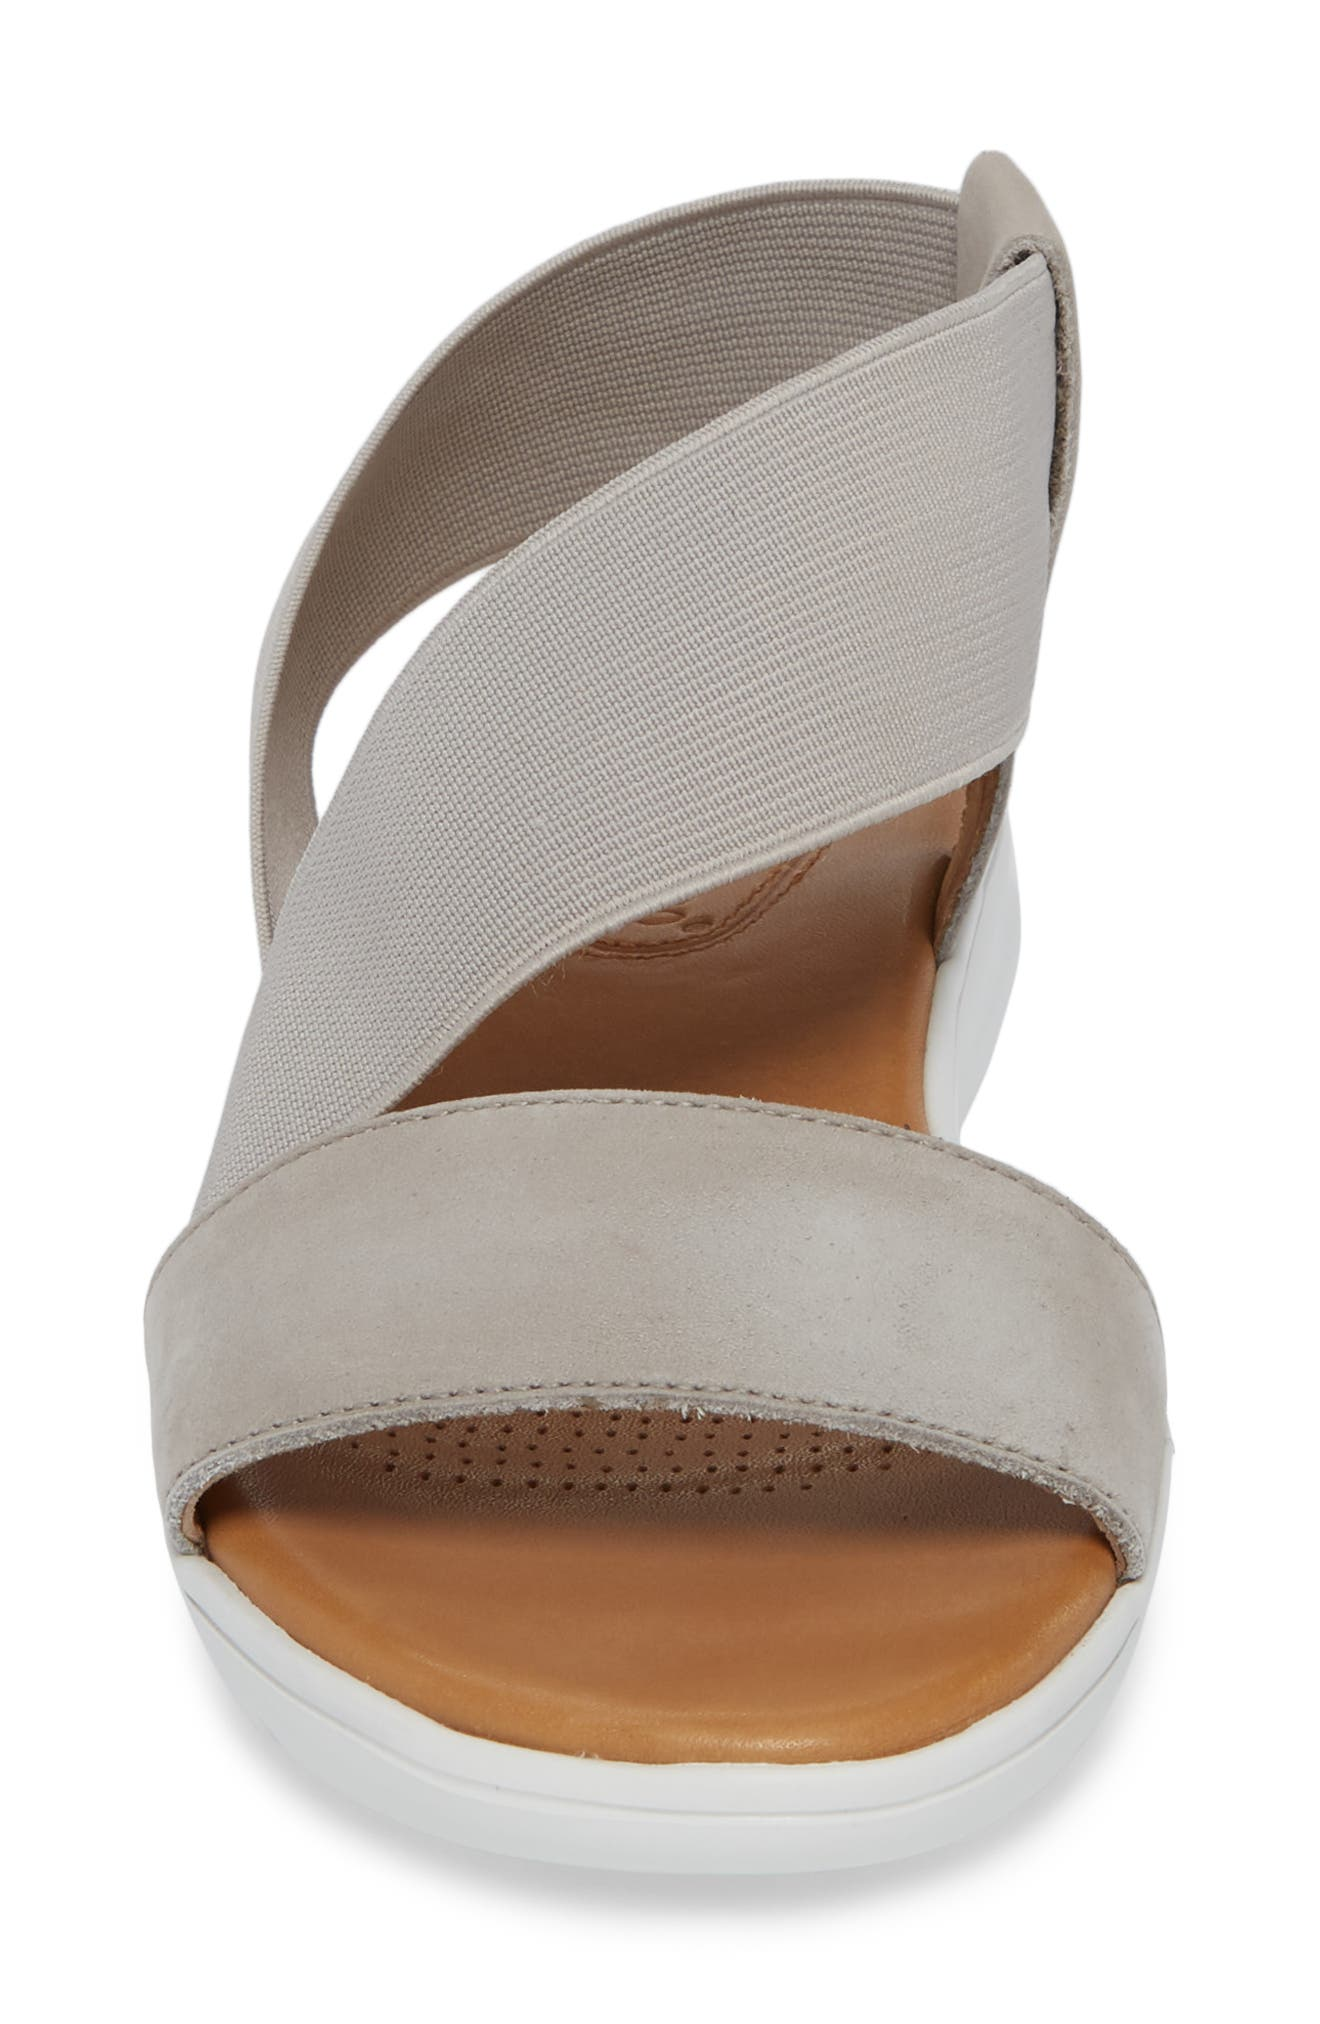 Tanyah Sandal,                             Alternate thumbnail 4, color,                             Grey Leather